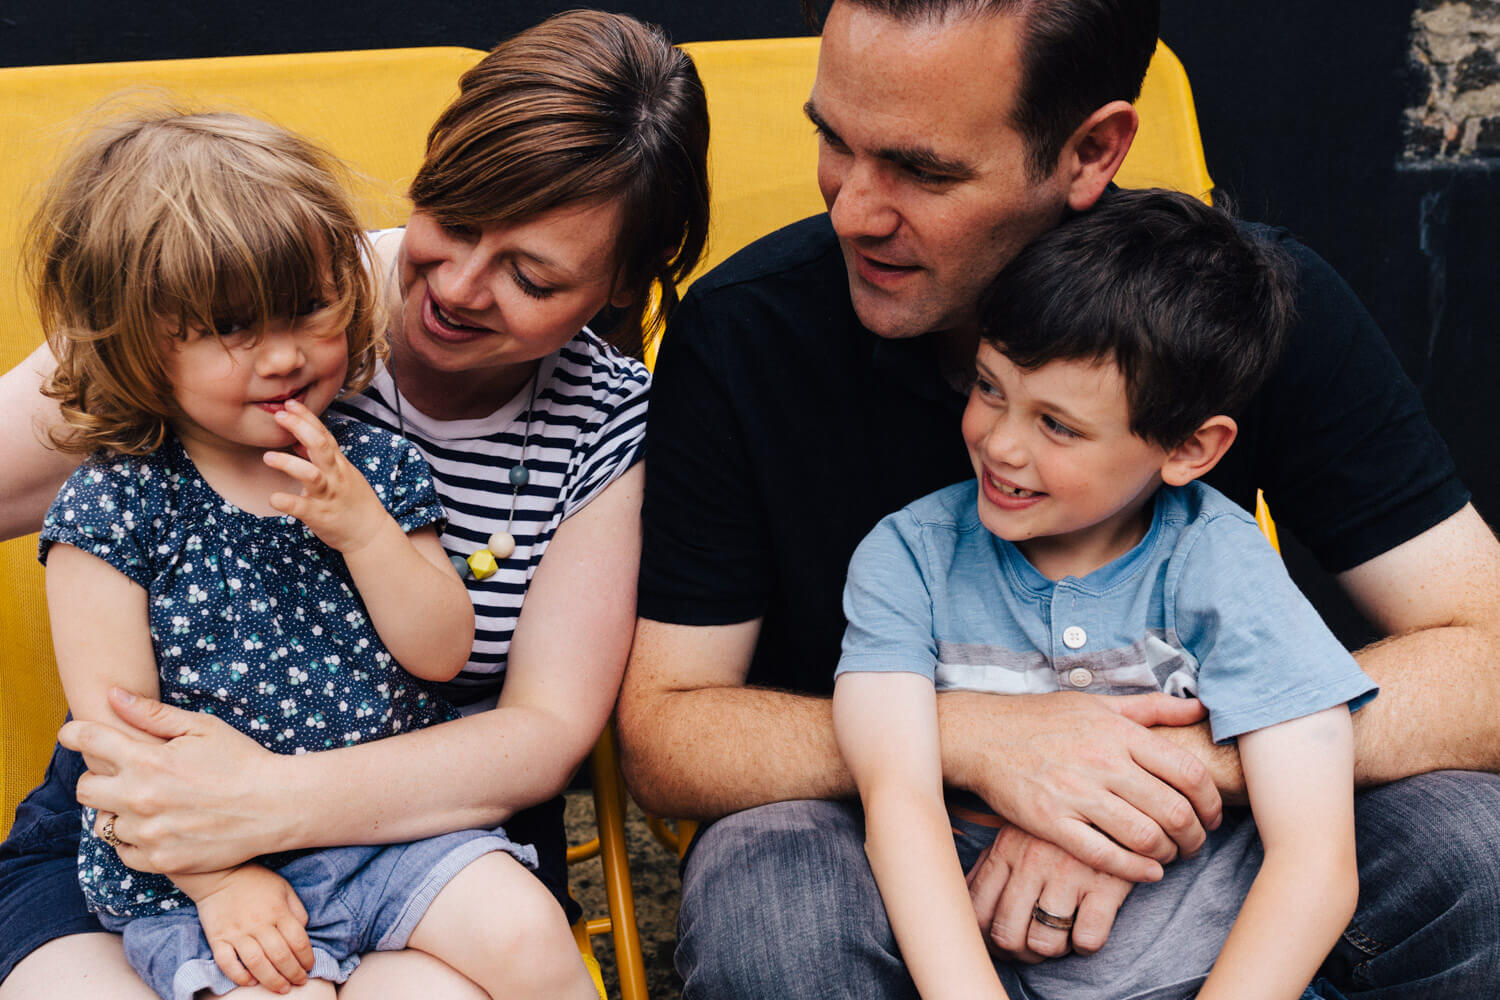 family-photography-session-London-01.jpg